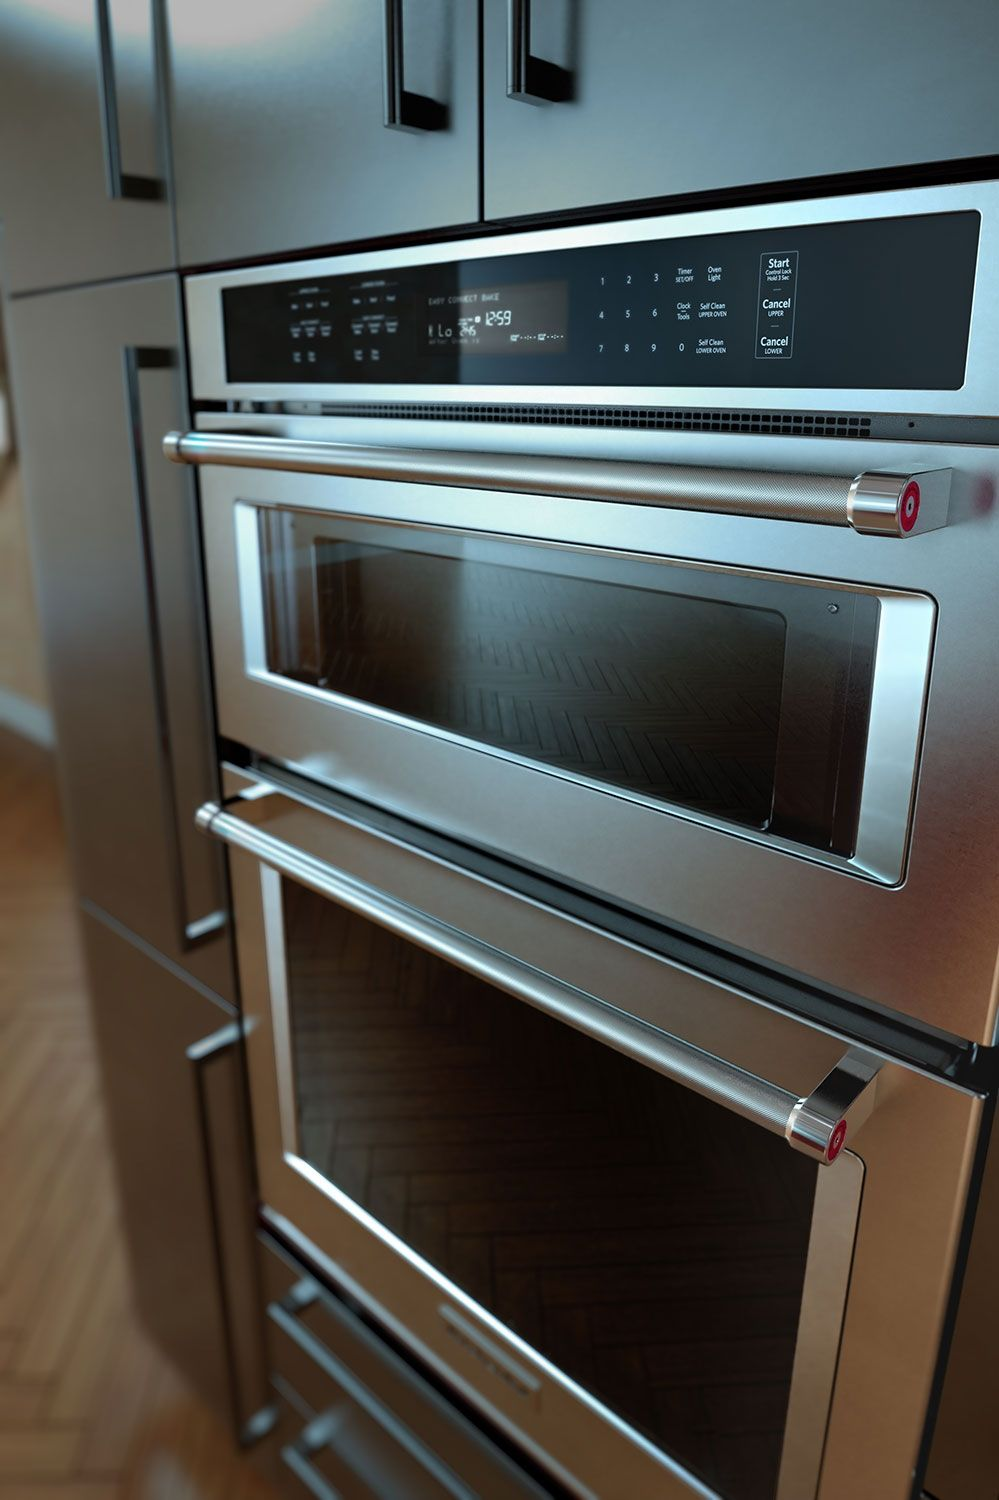 KOCE500ESS/The Brick/$5184.97/Cooking Products   KitchenAid 30u201d Double Wall  Oven With Microwave And Conventional Oven   Stainless Steel